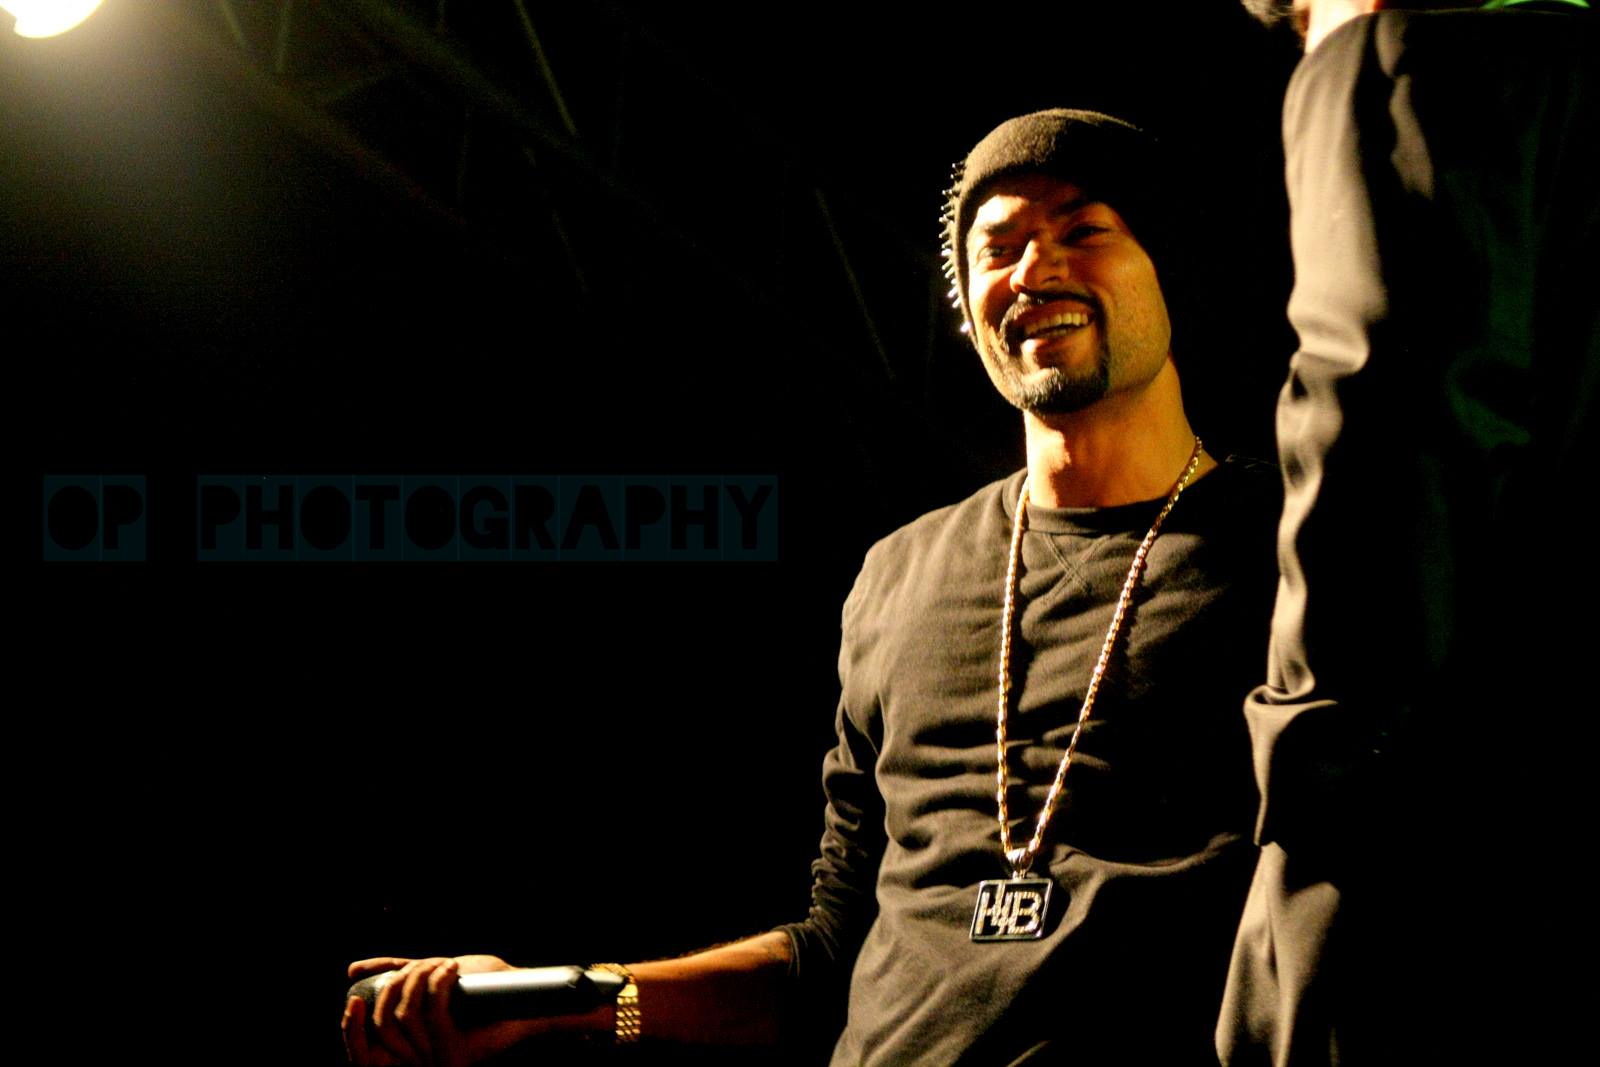 Bohemia Quotes Wallpaper Download Bohemia Live Wallpaper Gallery